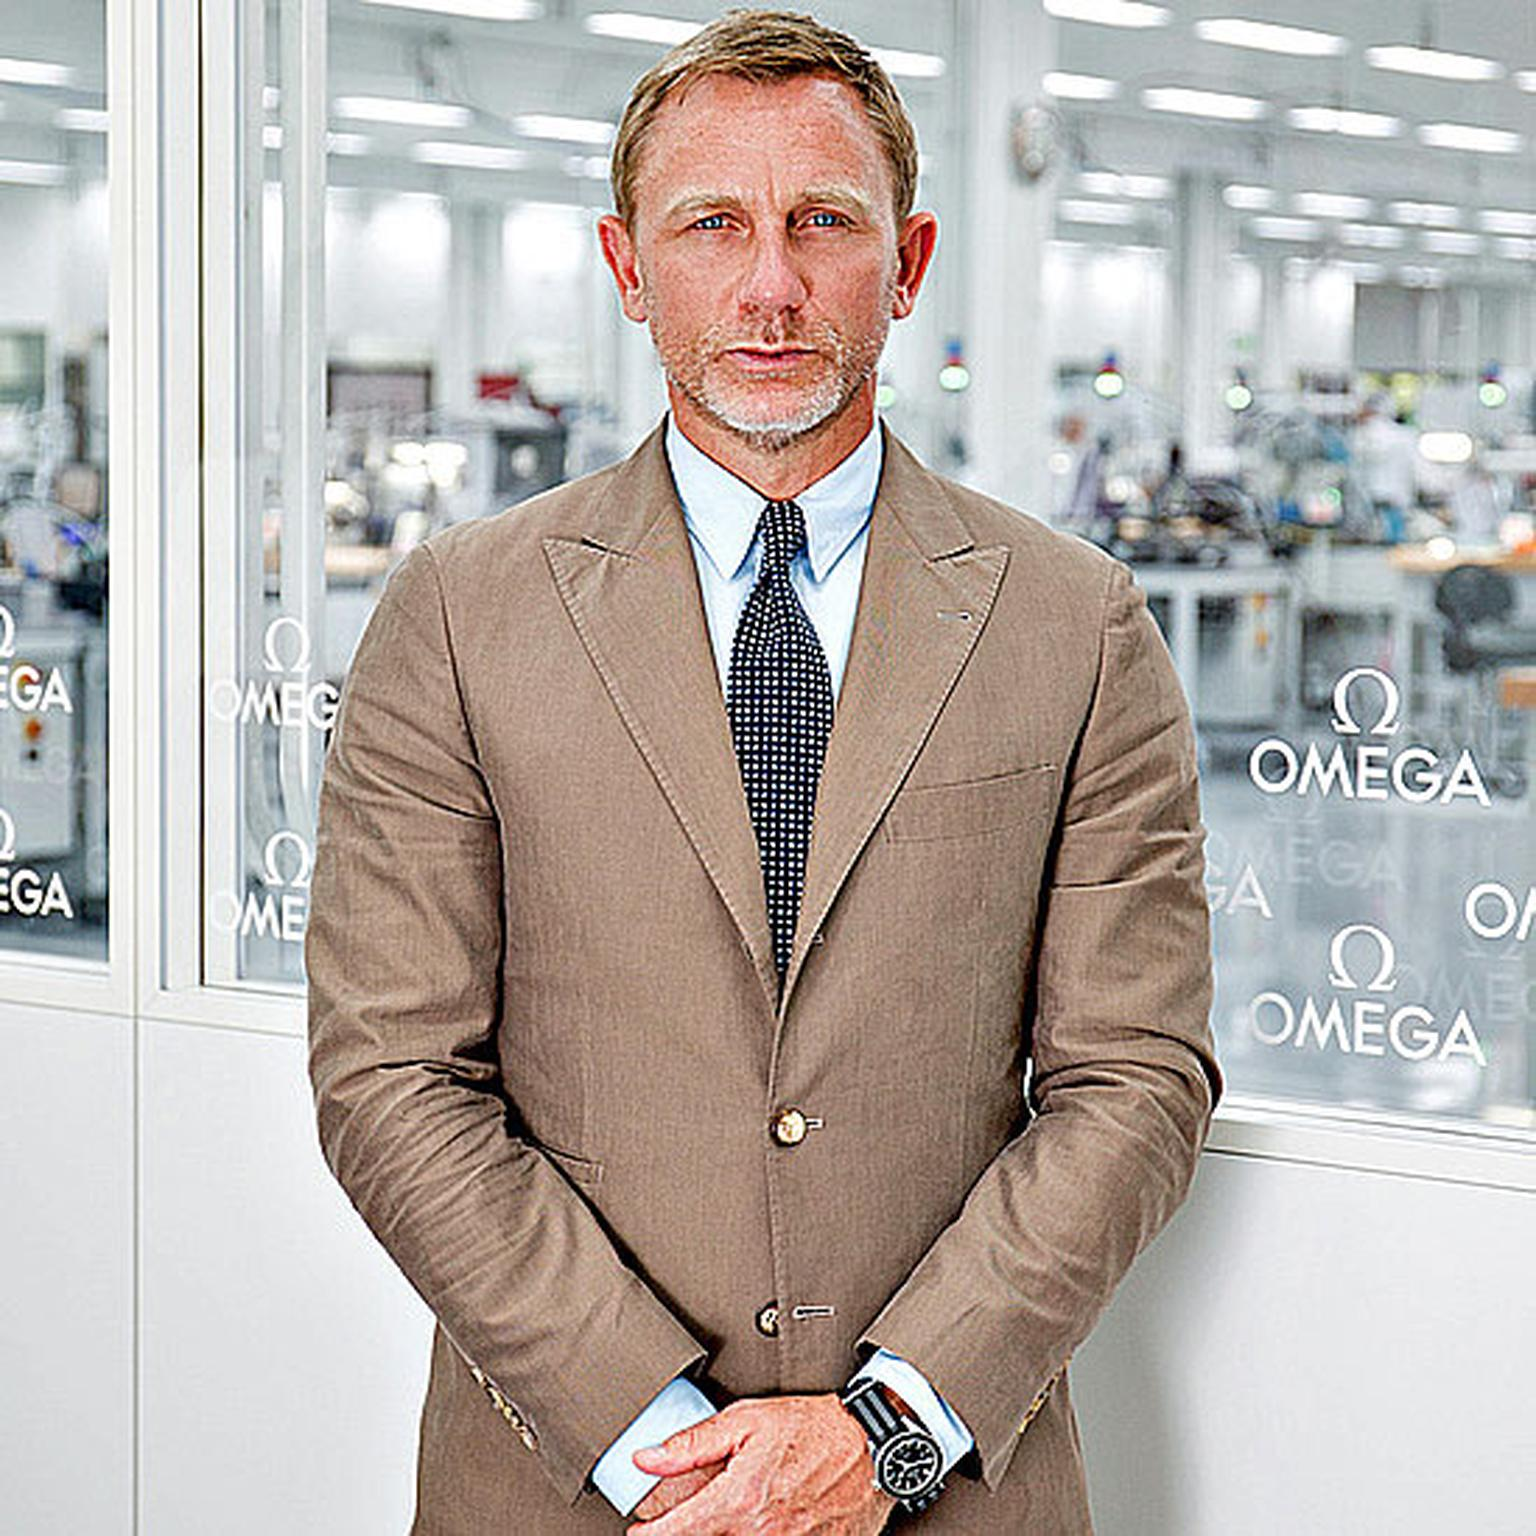 Daniel Craig at Omega manufacture wearing the Omega Seamaster Spectre